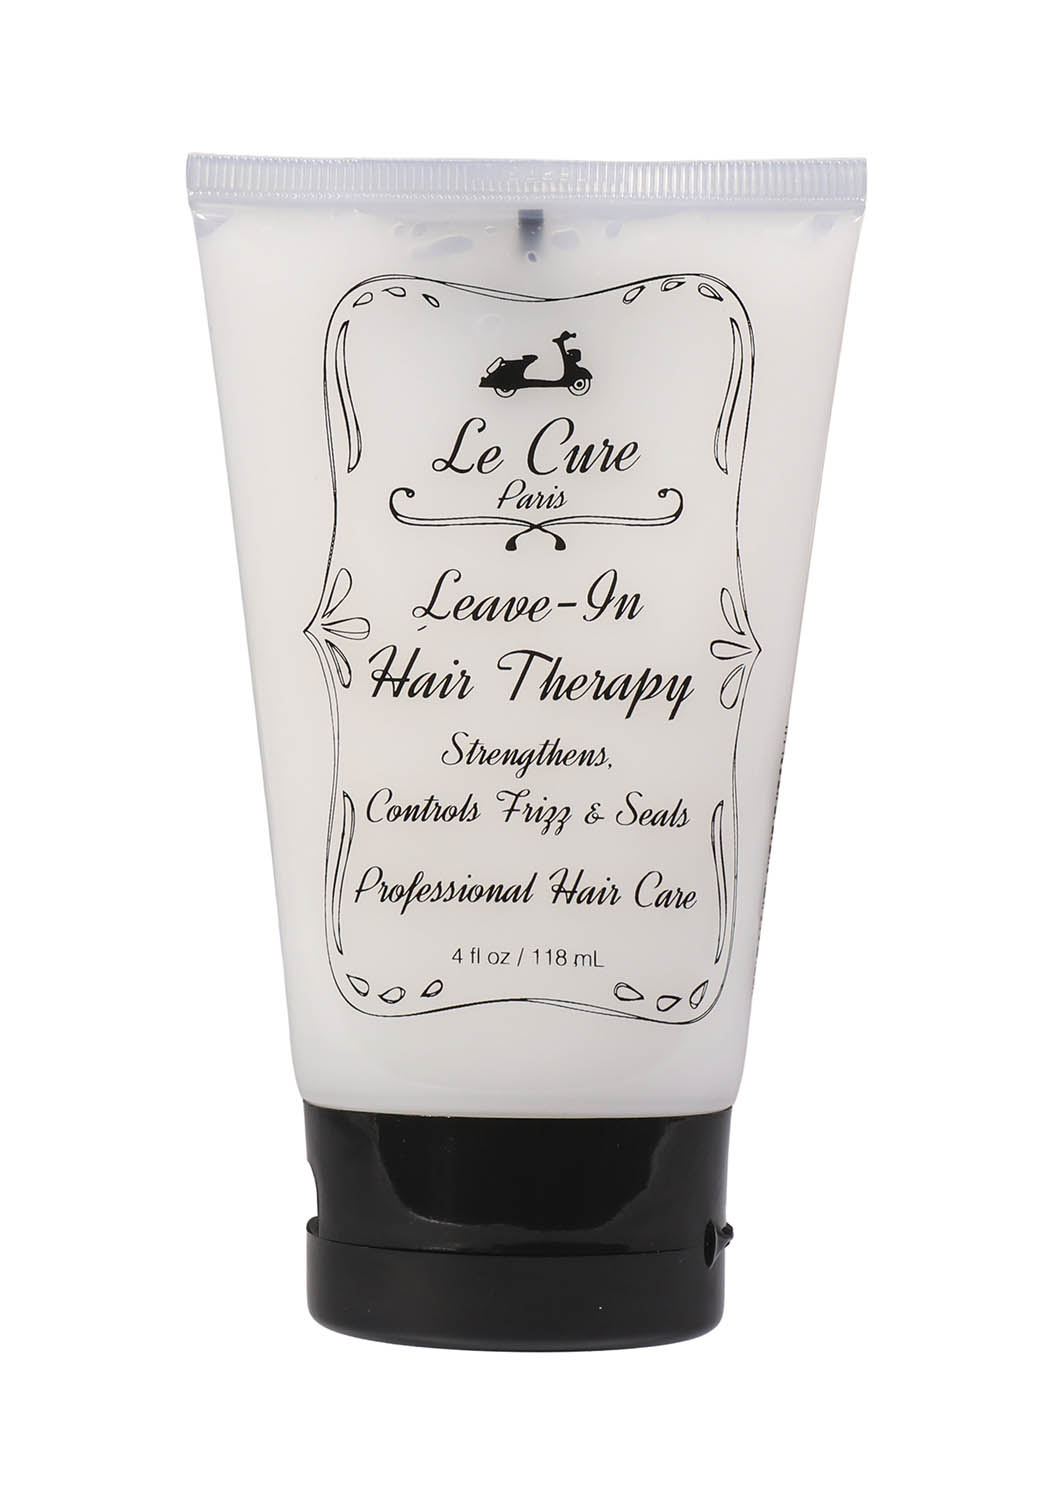 Featured product from Le Cure Paris and The Hair Parlor On 8th